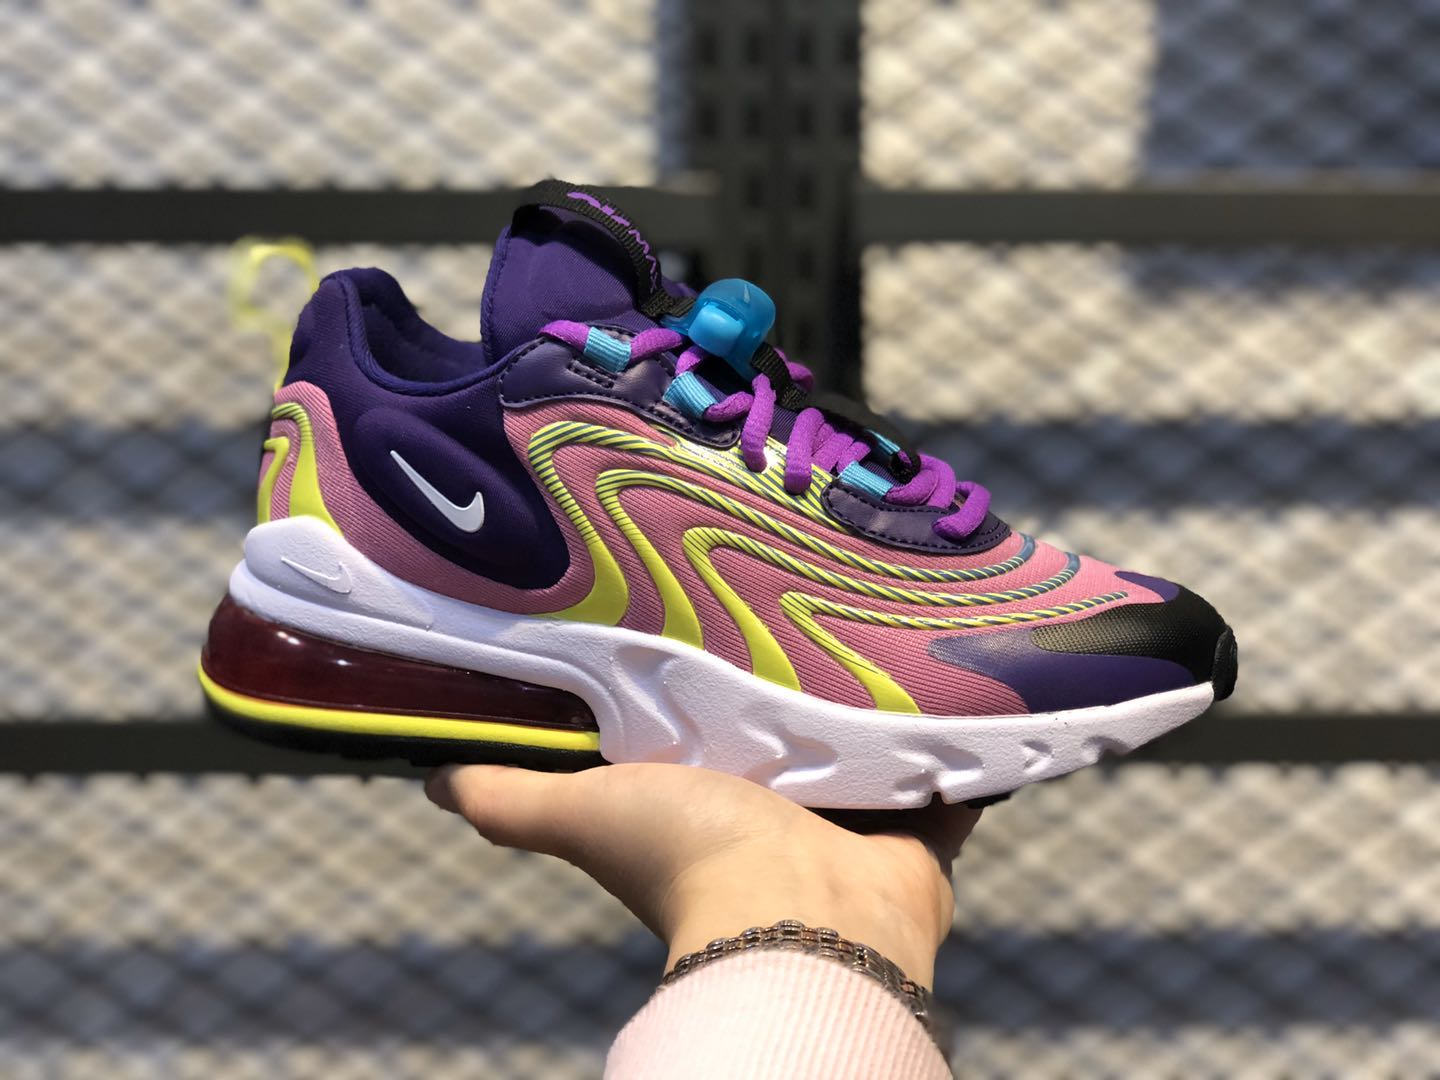 Nike Air Max 270 ENG Eggplant/White/Magic Flamingo CK2595-500